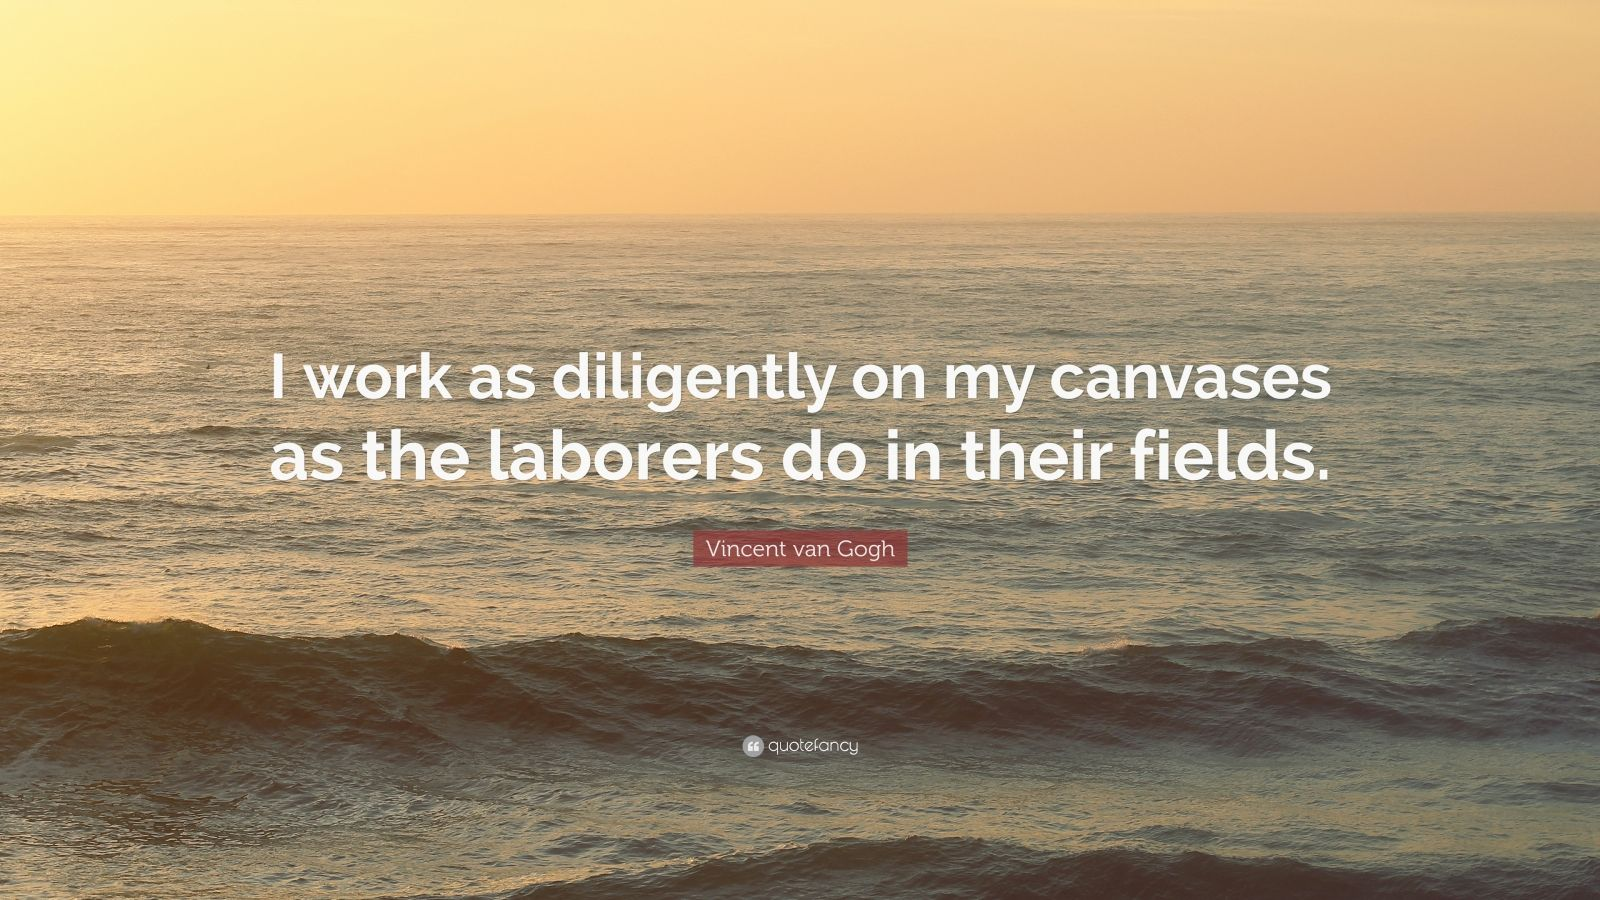 """Vincent van Gogh Quote: """"I work as diligently on my canvases as the laborers do in their fields."""""""